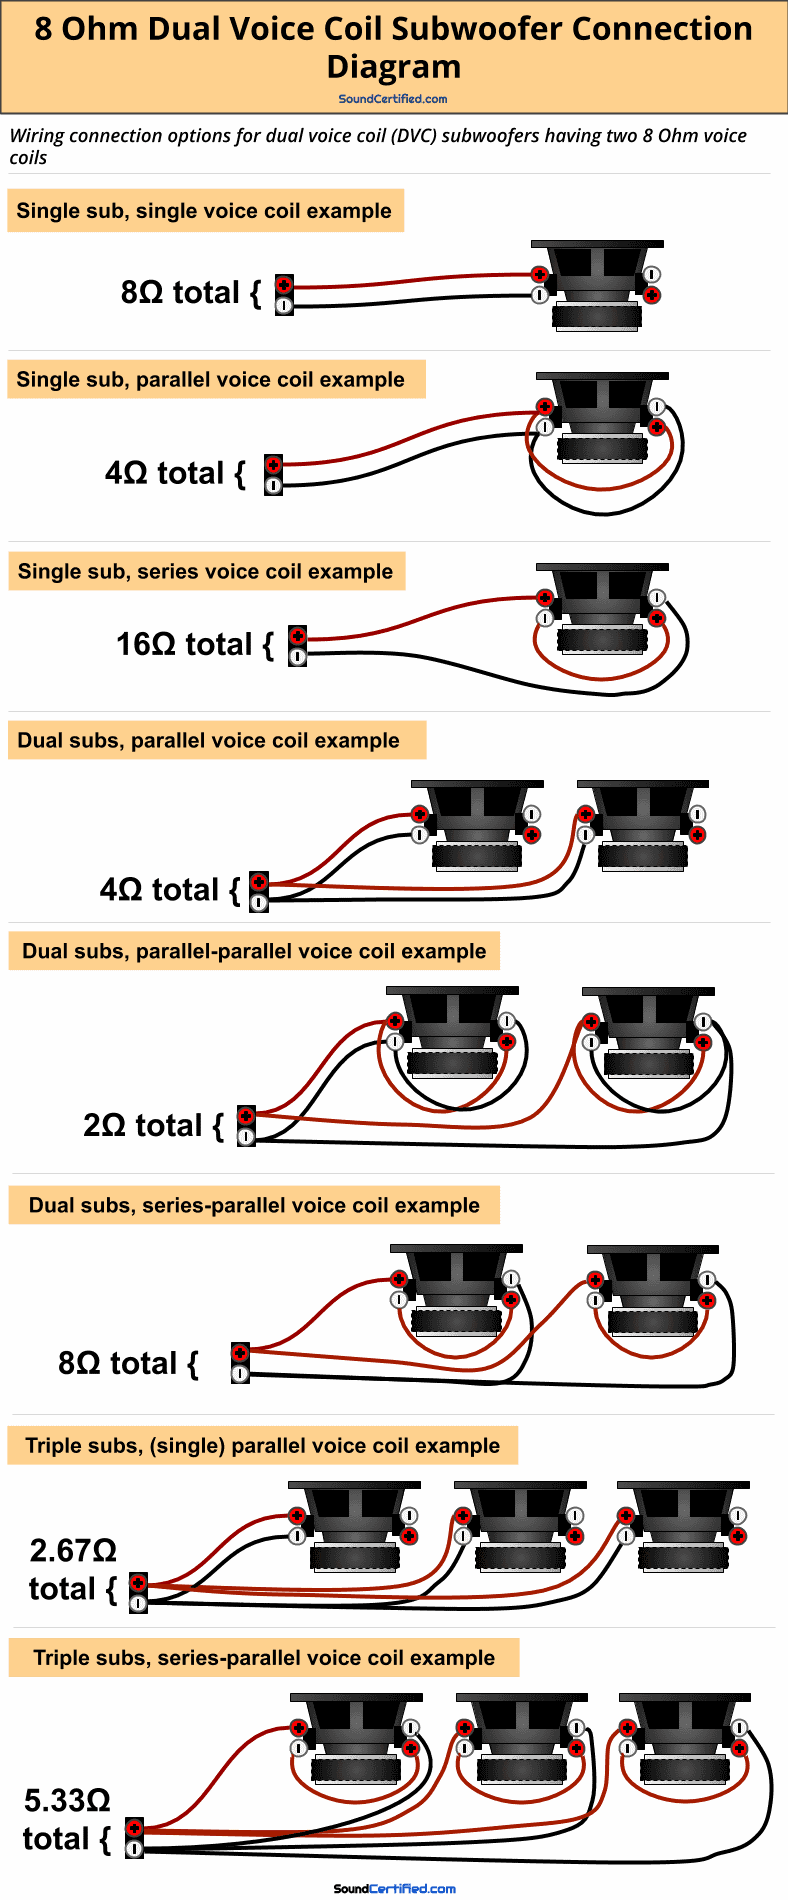 8 Ohm dual voice coil subwoofer wiring diagram